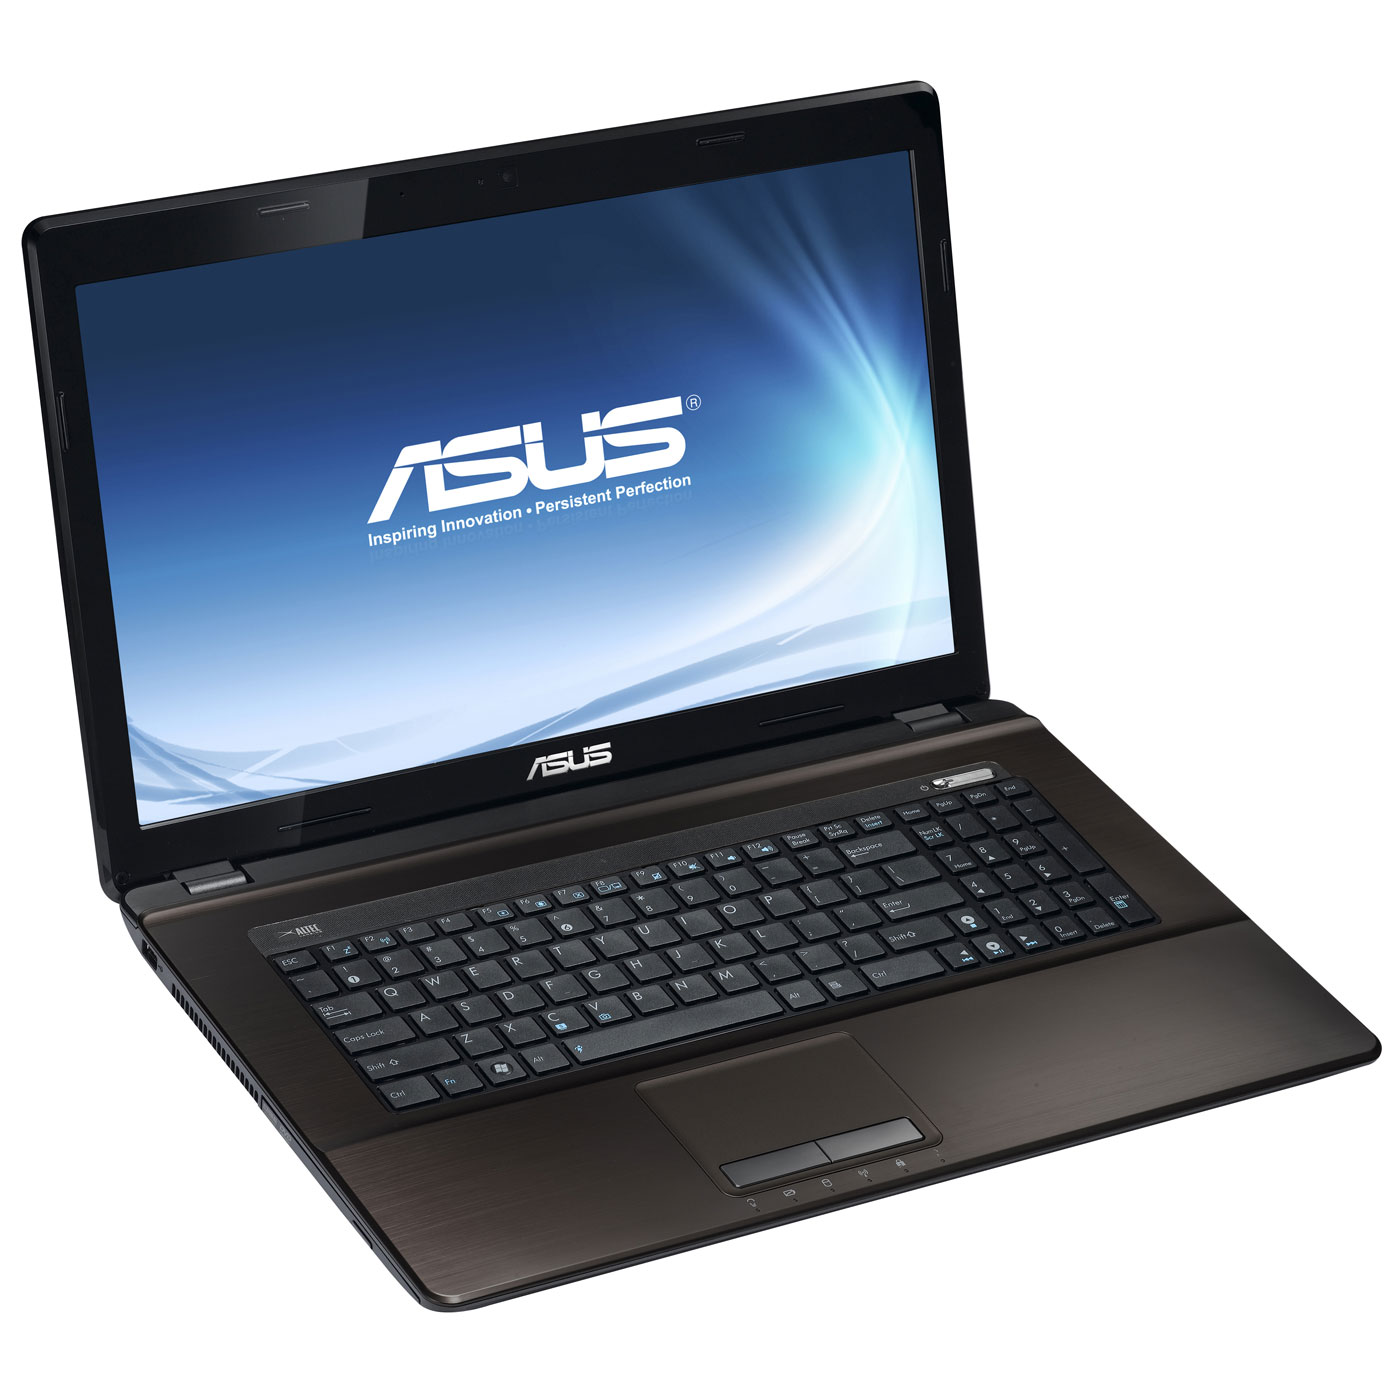 asus x73sm ty004v pc portable asus sur. Black Bedroom Furniture Sets. Home Design Ideas